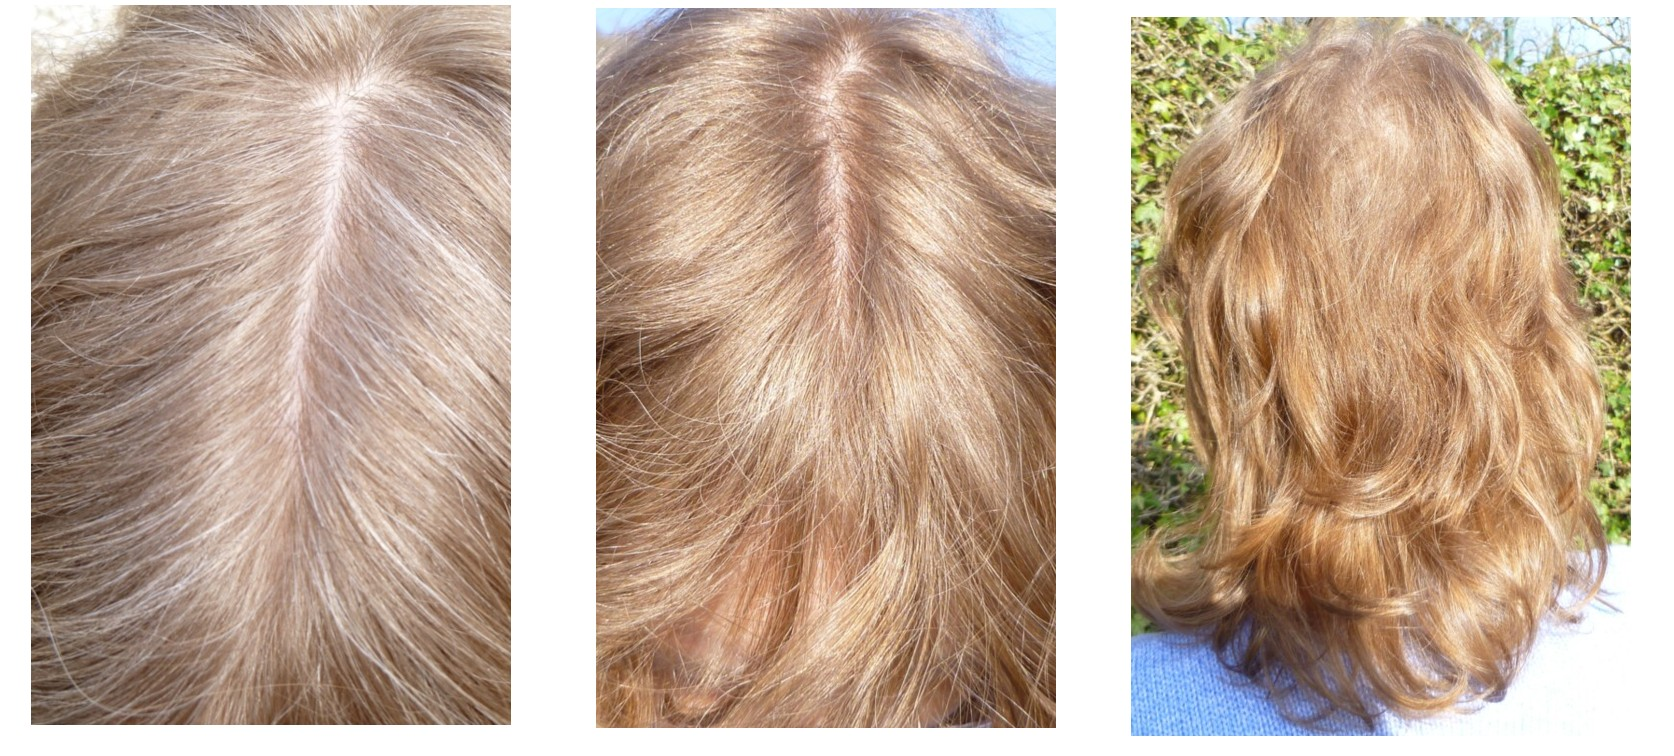 Colouring Your Hair Strawberry Blonde With Cassia And A Ideas And Designs